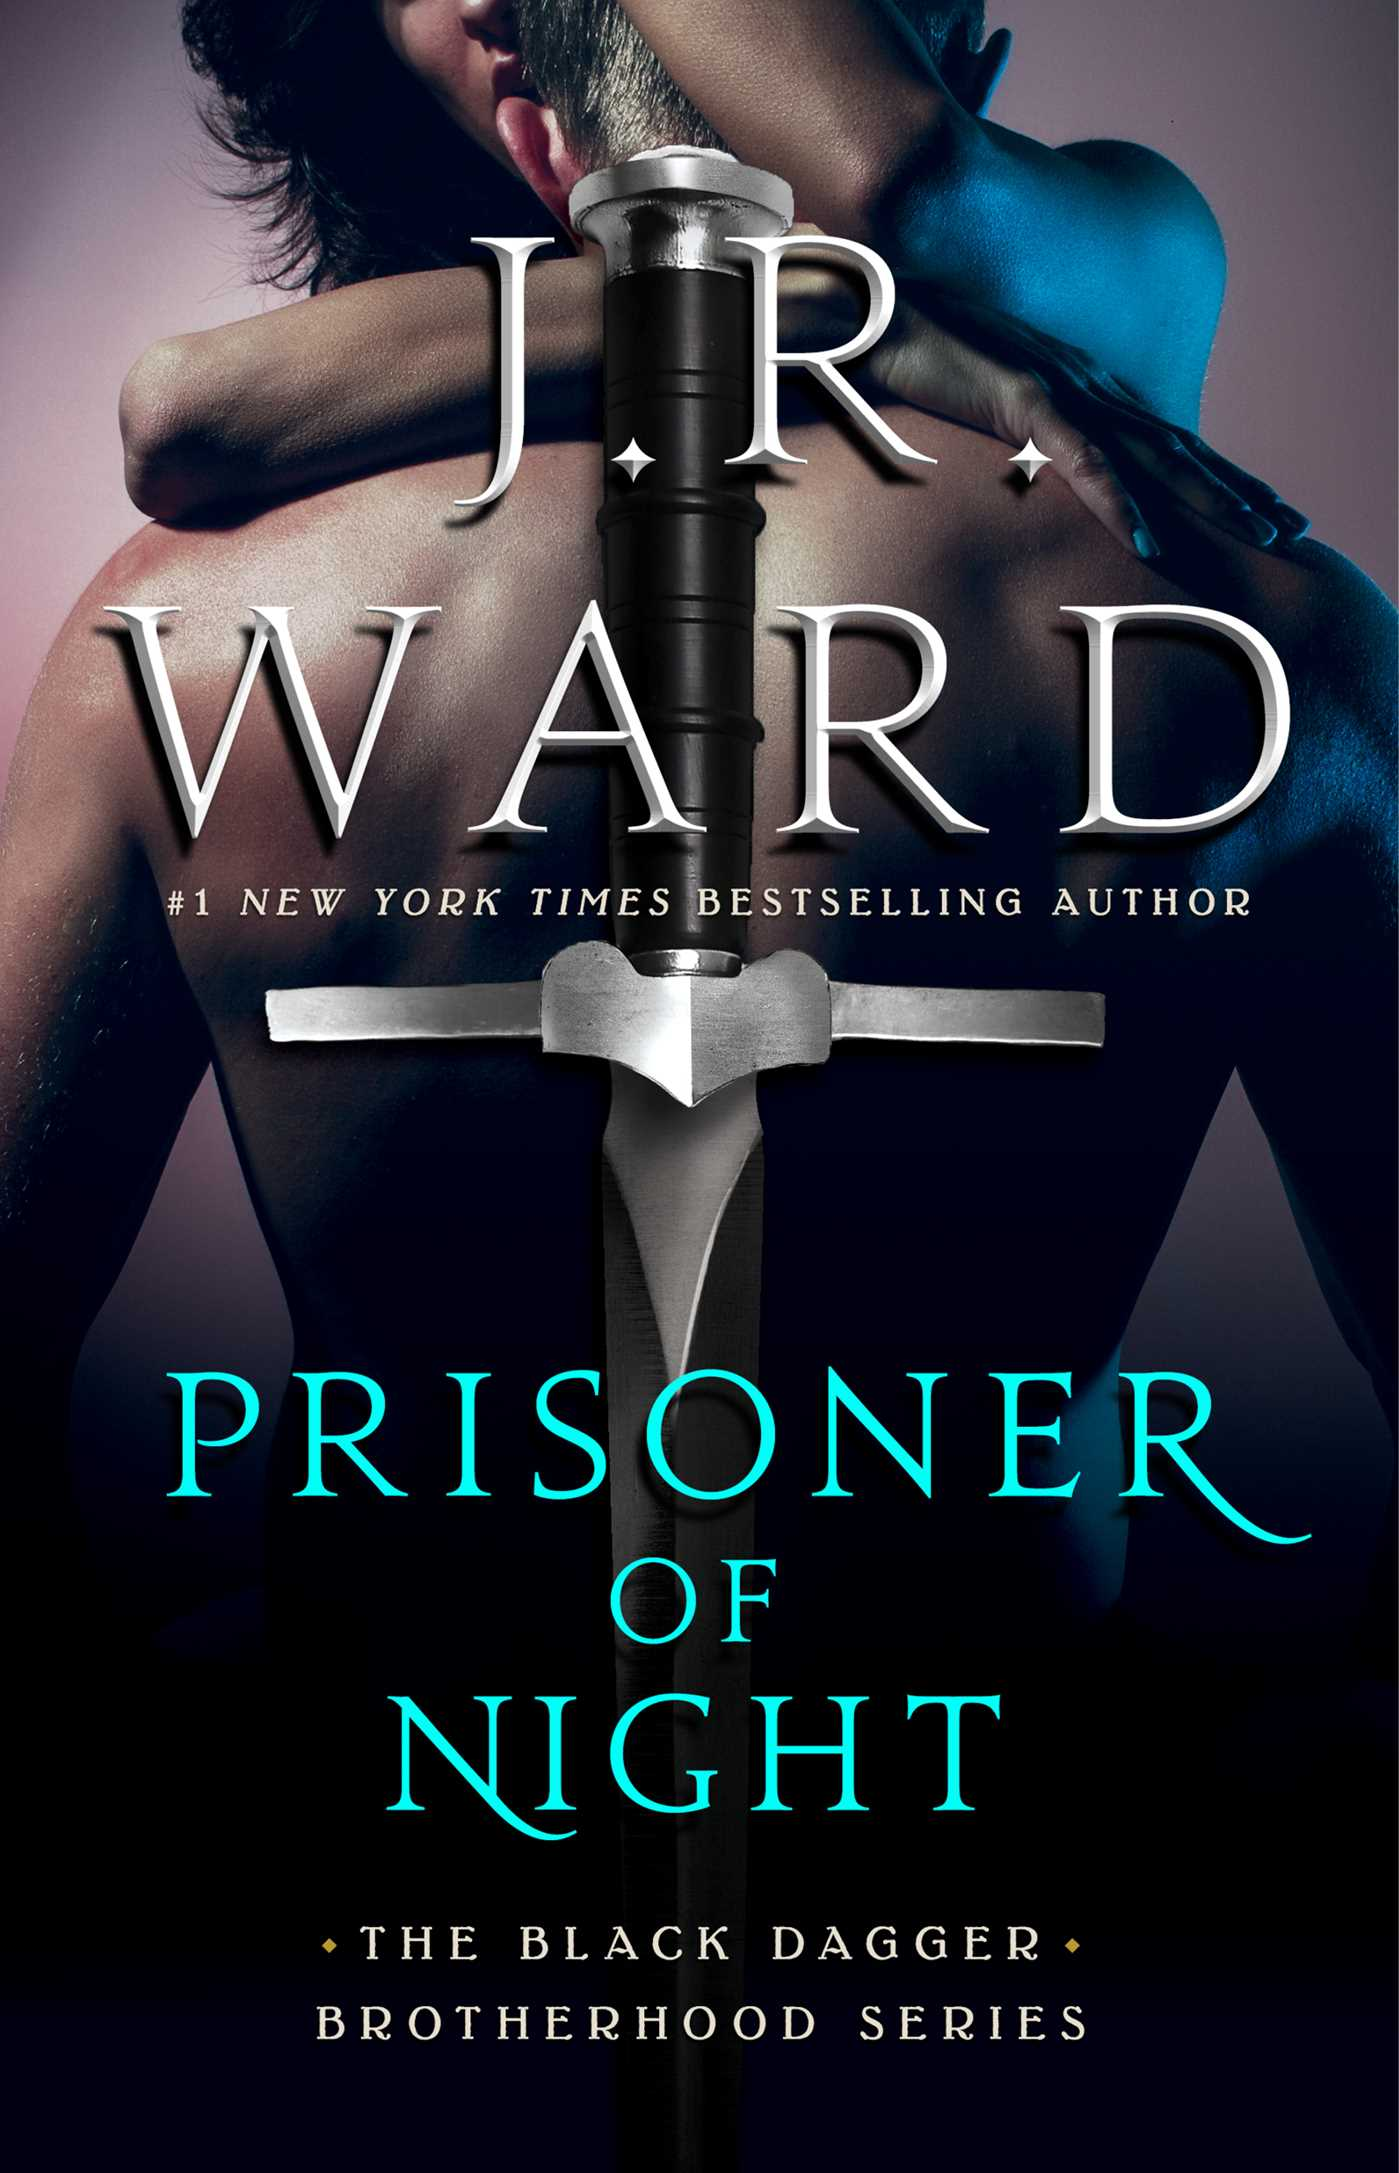 Book Cover Image (jpg): Prisoner of Night